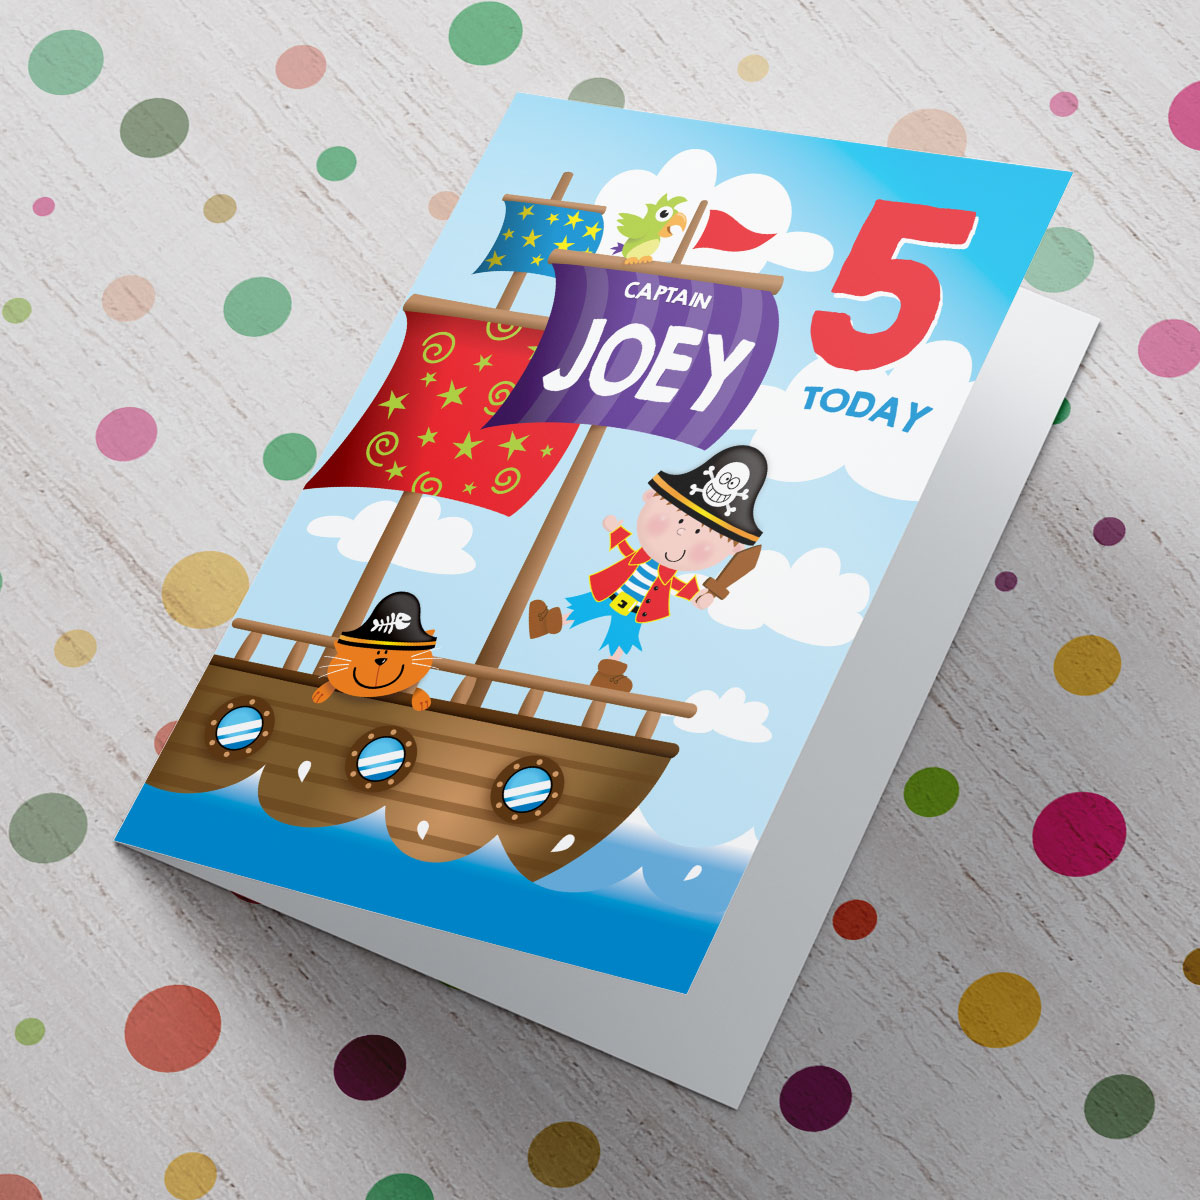 personalised photo birthday cards uk ; personalised-card---birthday-boy-pirate-captain_a